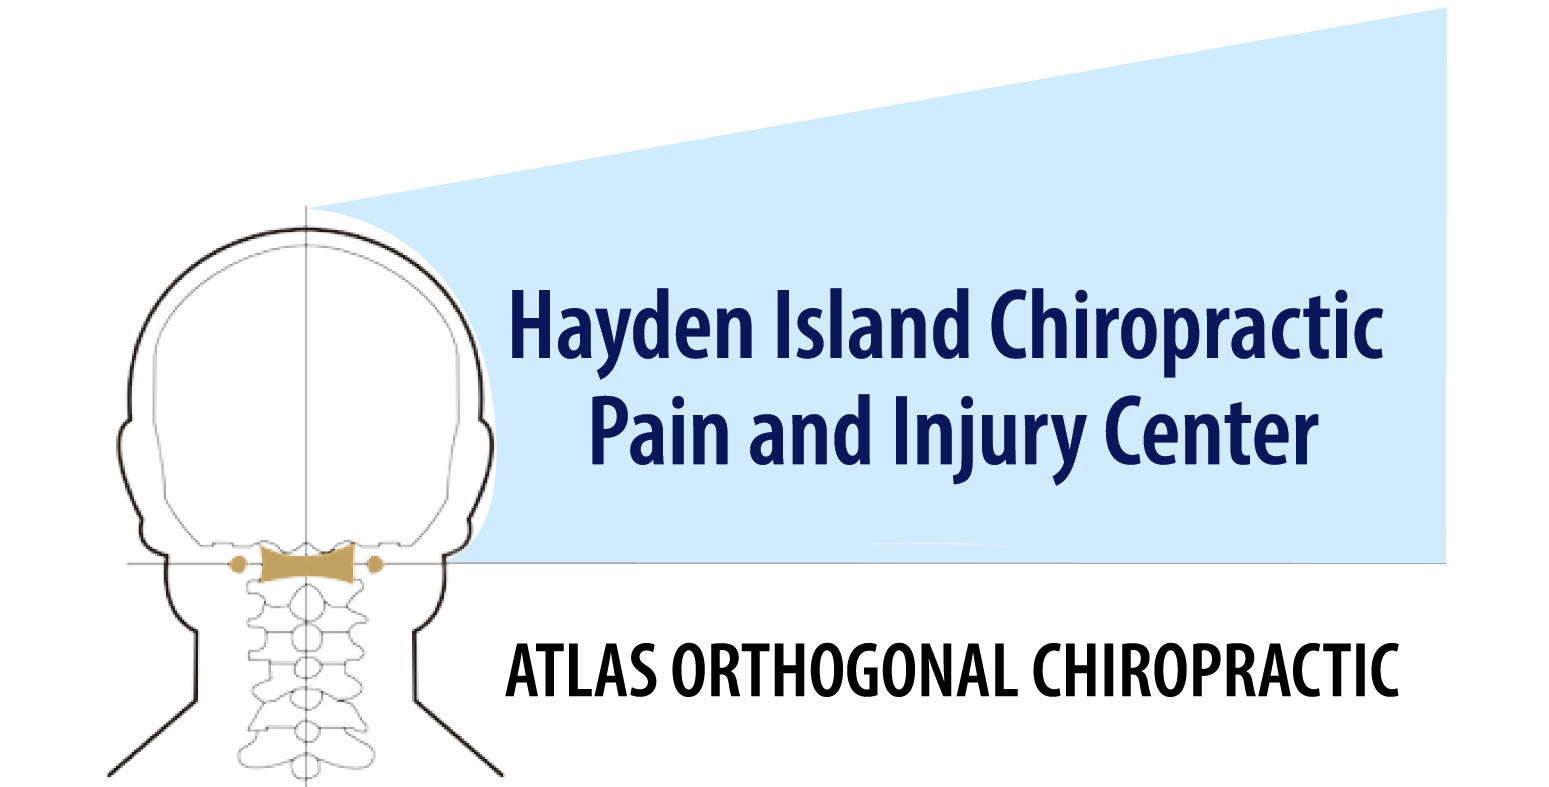 Hayden Island Chiropractic Pain and Injury Center